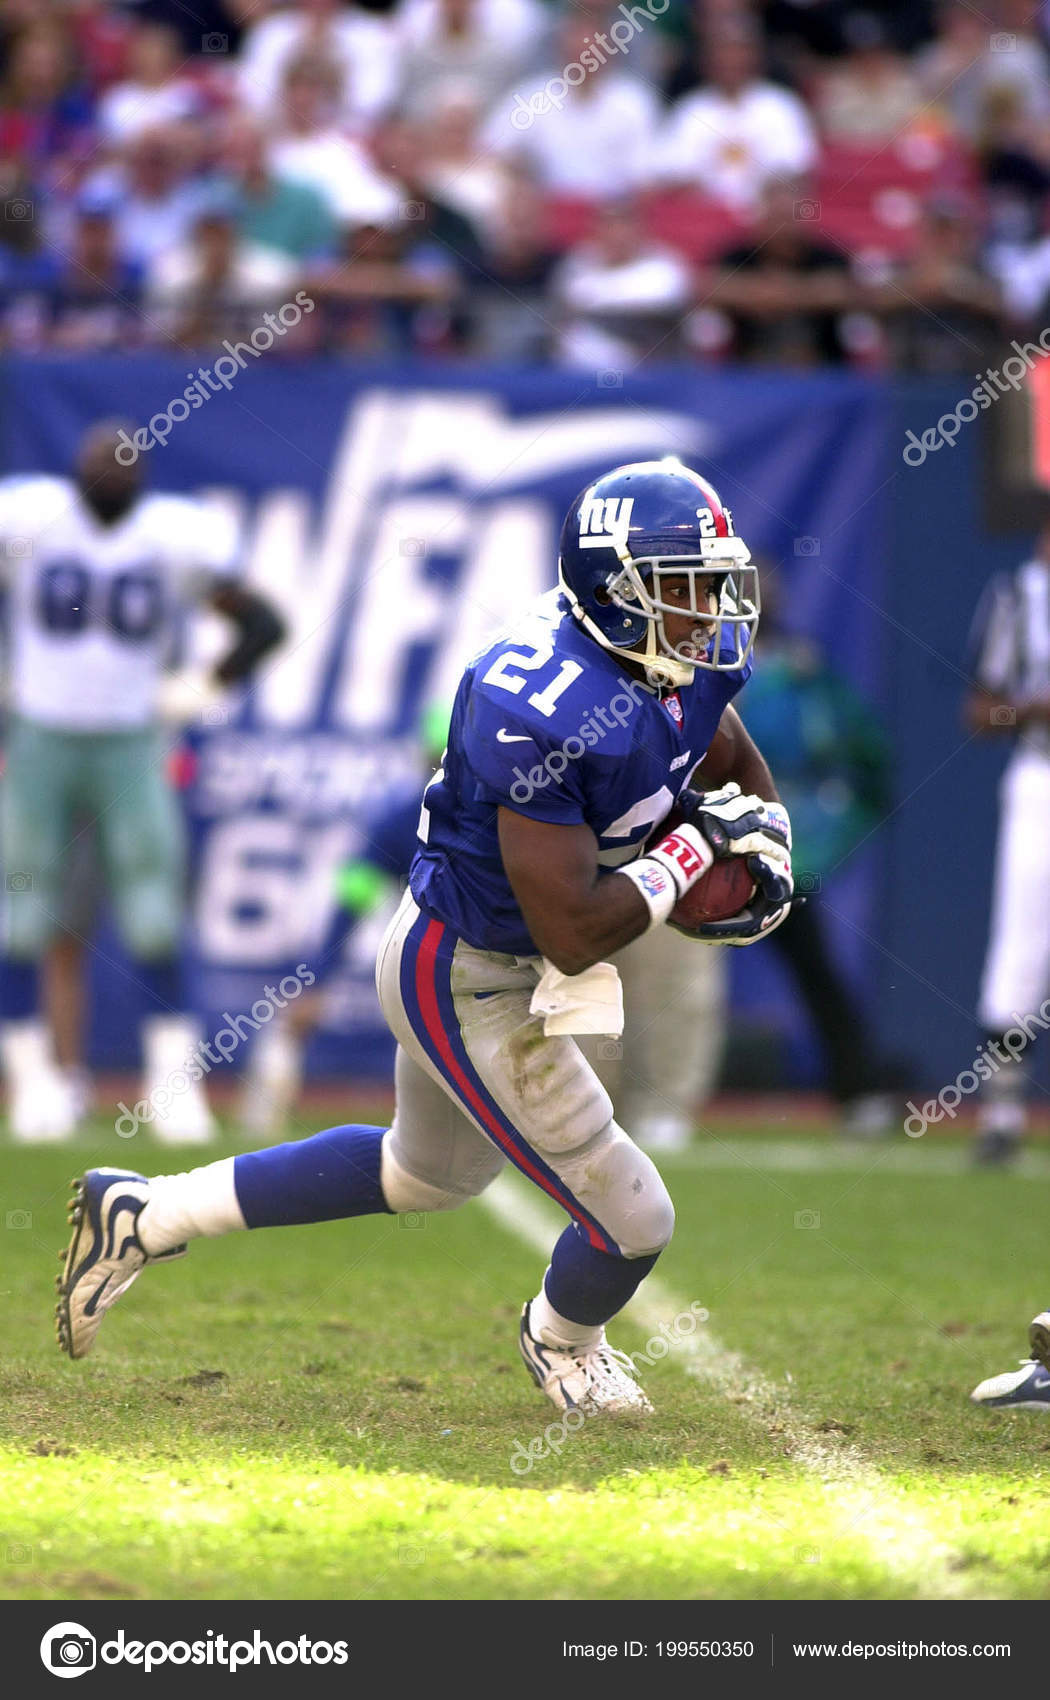 ffb700ce37d Tiki Barber running back for the New York Giants in game action during a  regular season game. Tiki Barber is a former professional American football  player ...